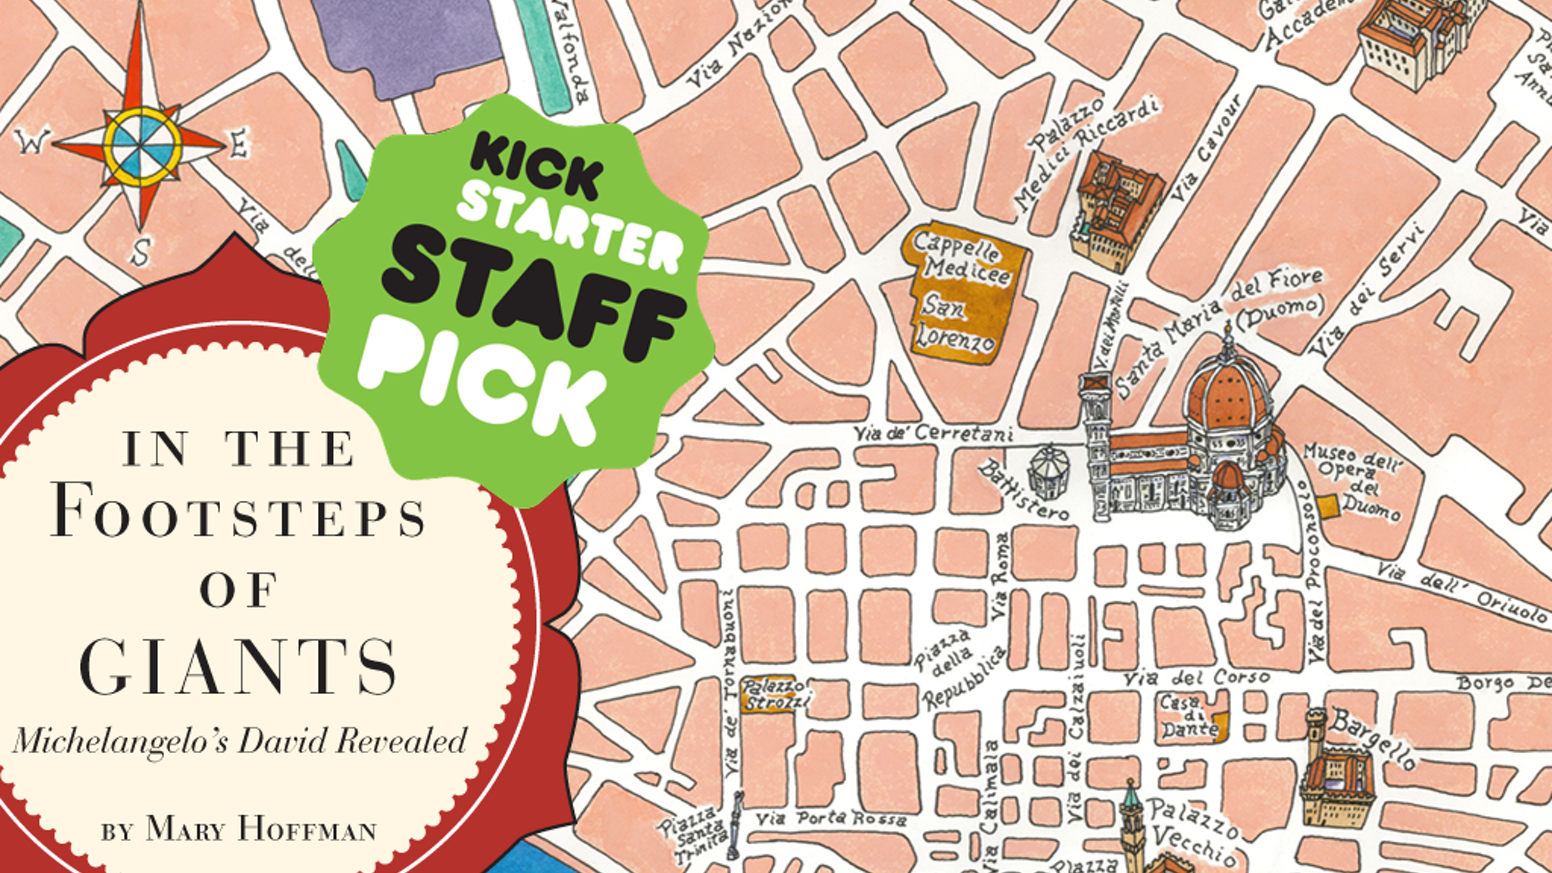 This Interactive Title Suite - StoryApp Tour & Book - Brings to Life 16th Century Florence & Renaissance Giants: Michelangelo & David